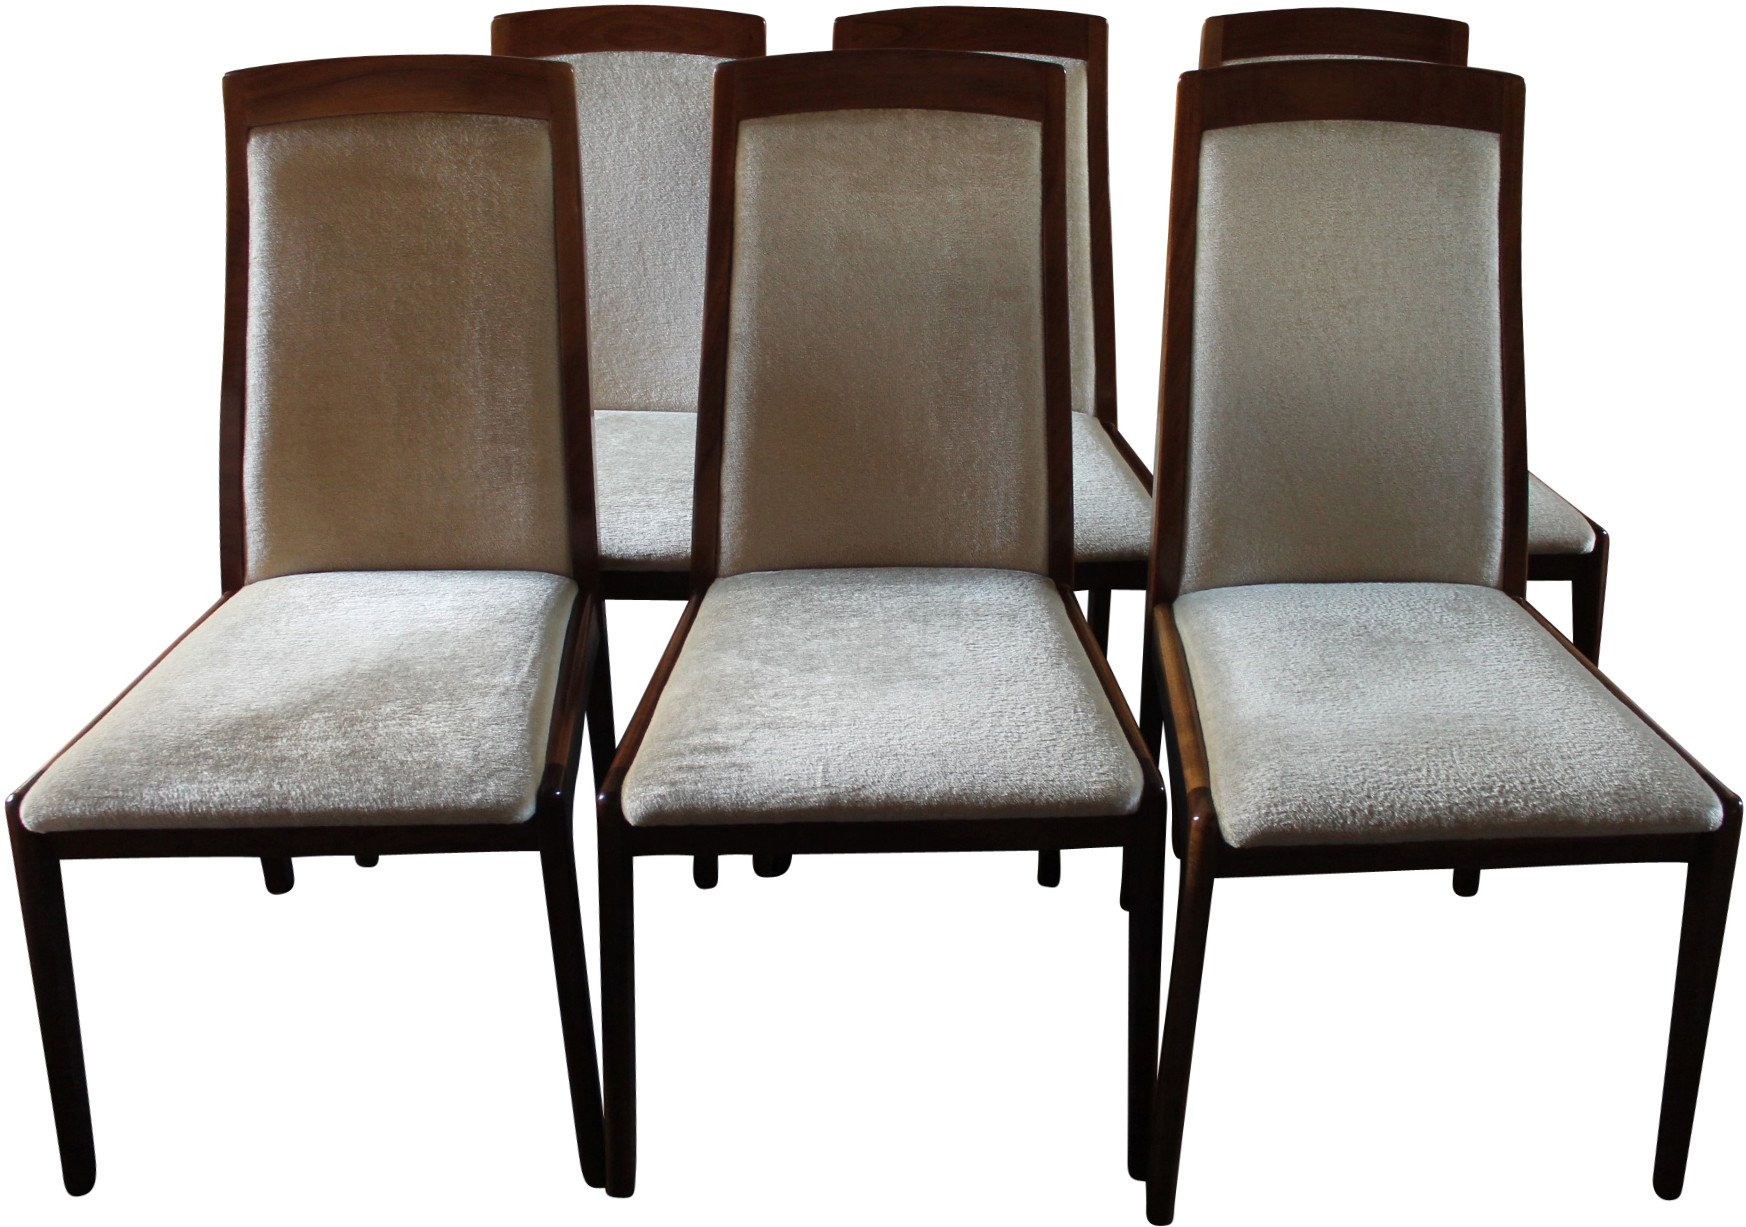 Set of Six Chairs, 1970s